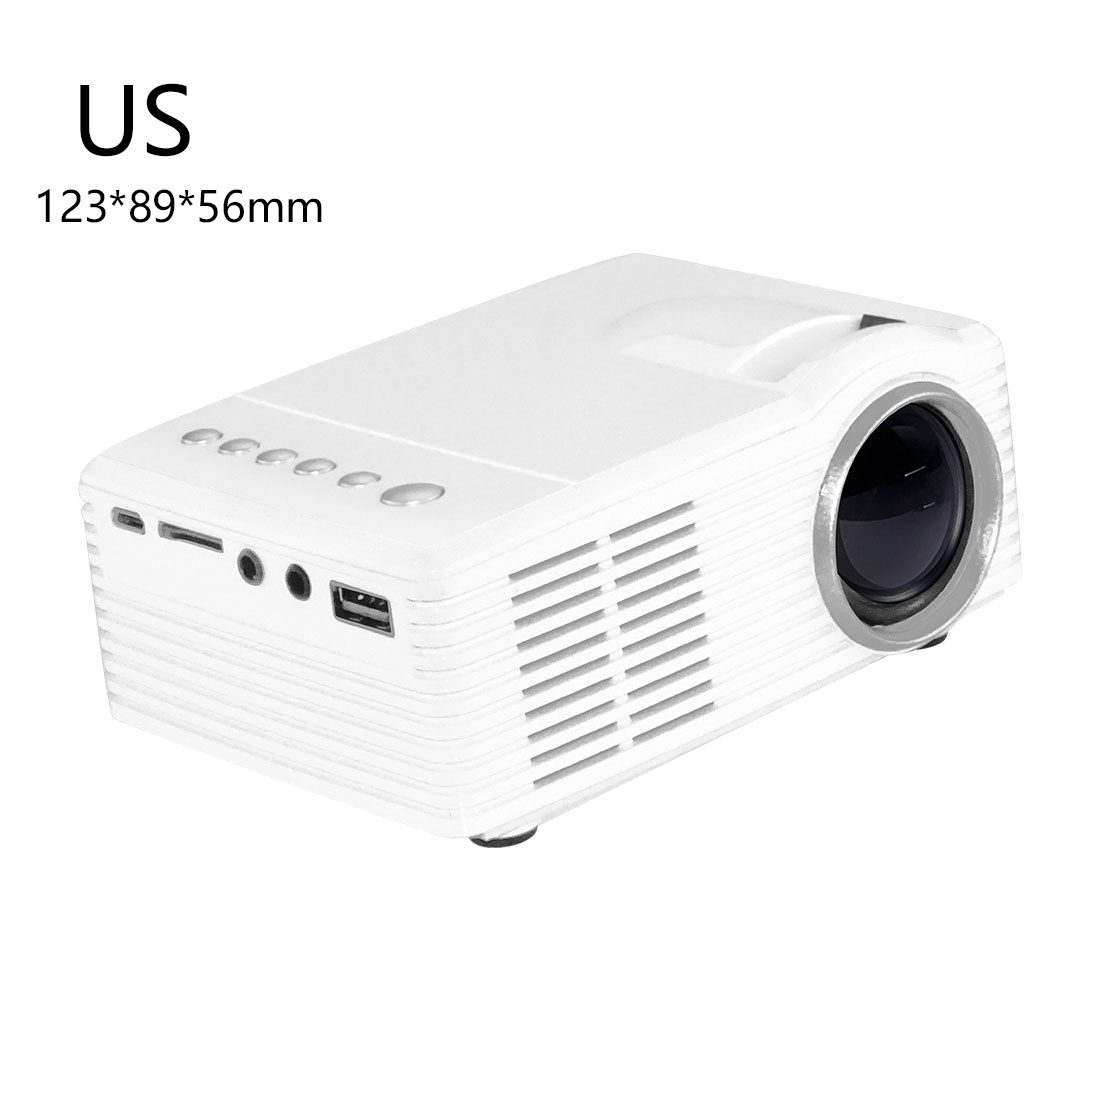 centechia MG300 Portable LCD LED Projector 3.5mm Audio 320x240 HDMI USB Mini MG300 Projector Home Media Player US Plug original yg300 mini projector full hd led projector 500lm audio hdmi usb mini yg 300 proyector home theater media player beamer